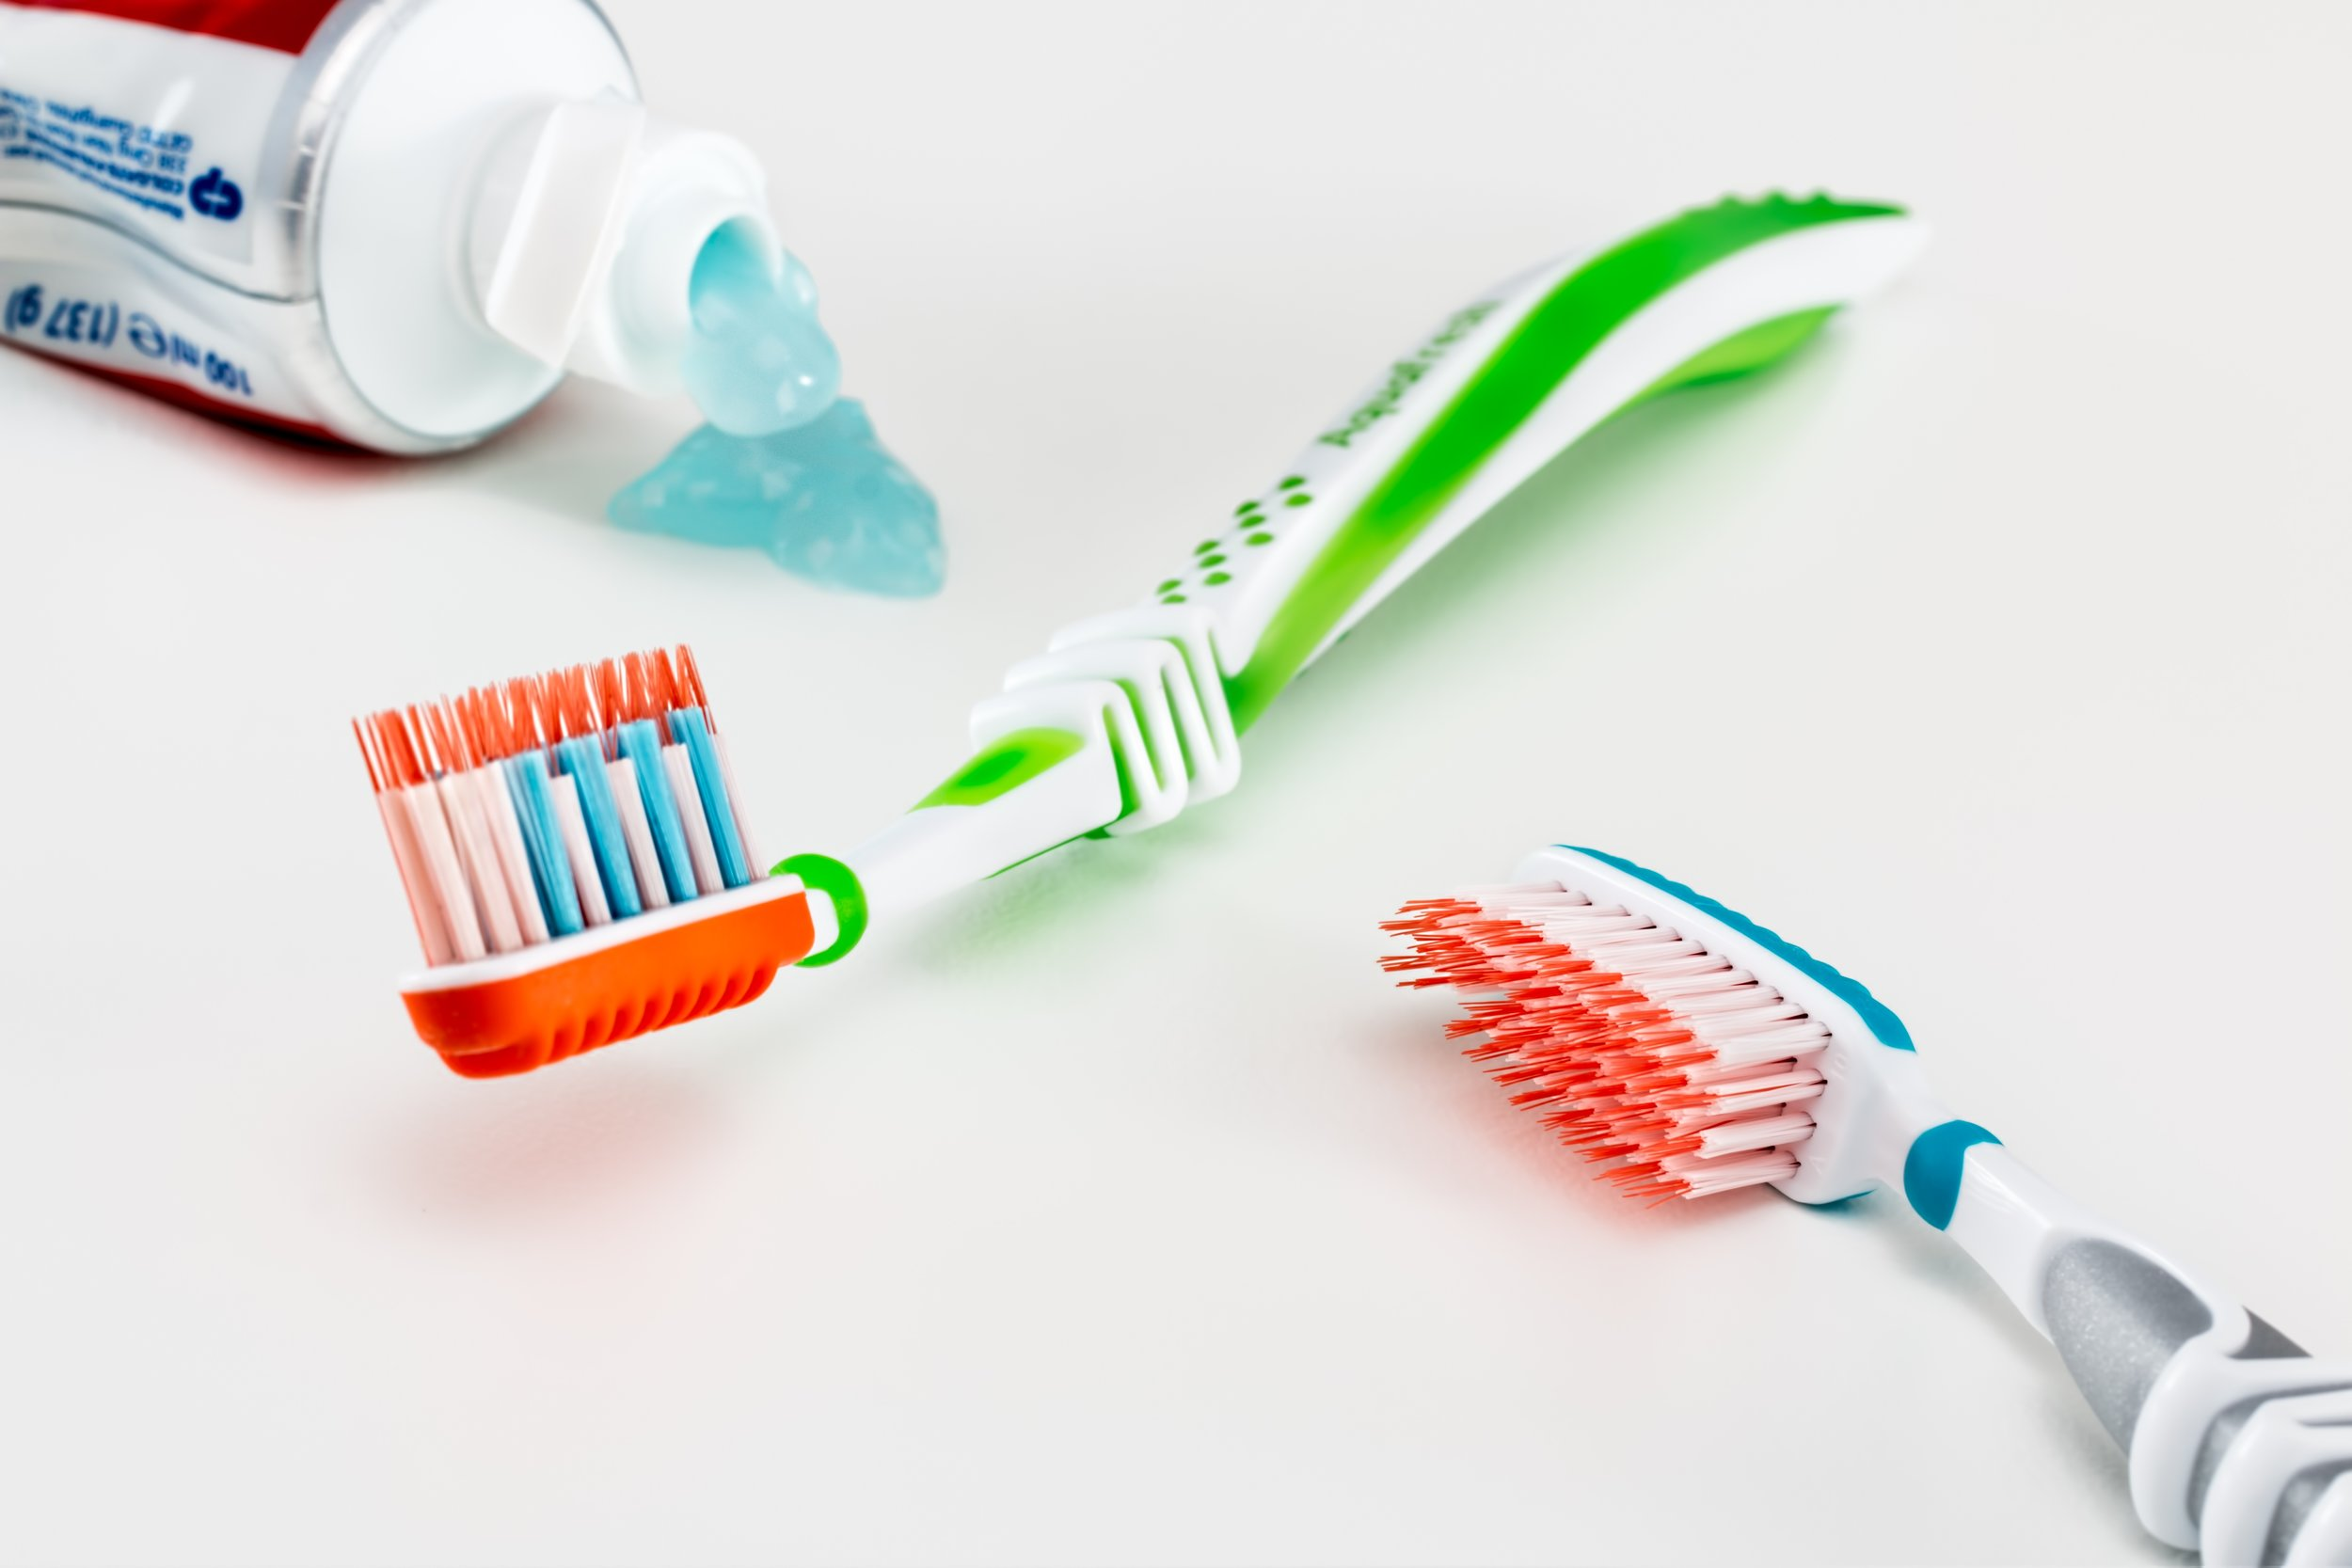 Plastic toothbrushes, and toothpaste containing micro plastics, packaged in PLASTIC. Photo: Pixabay